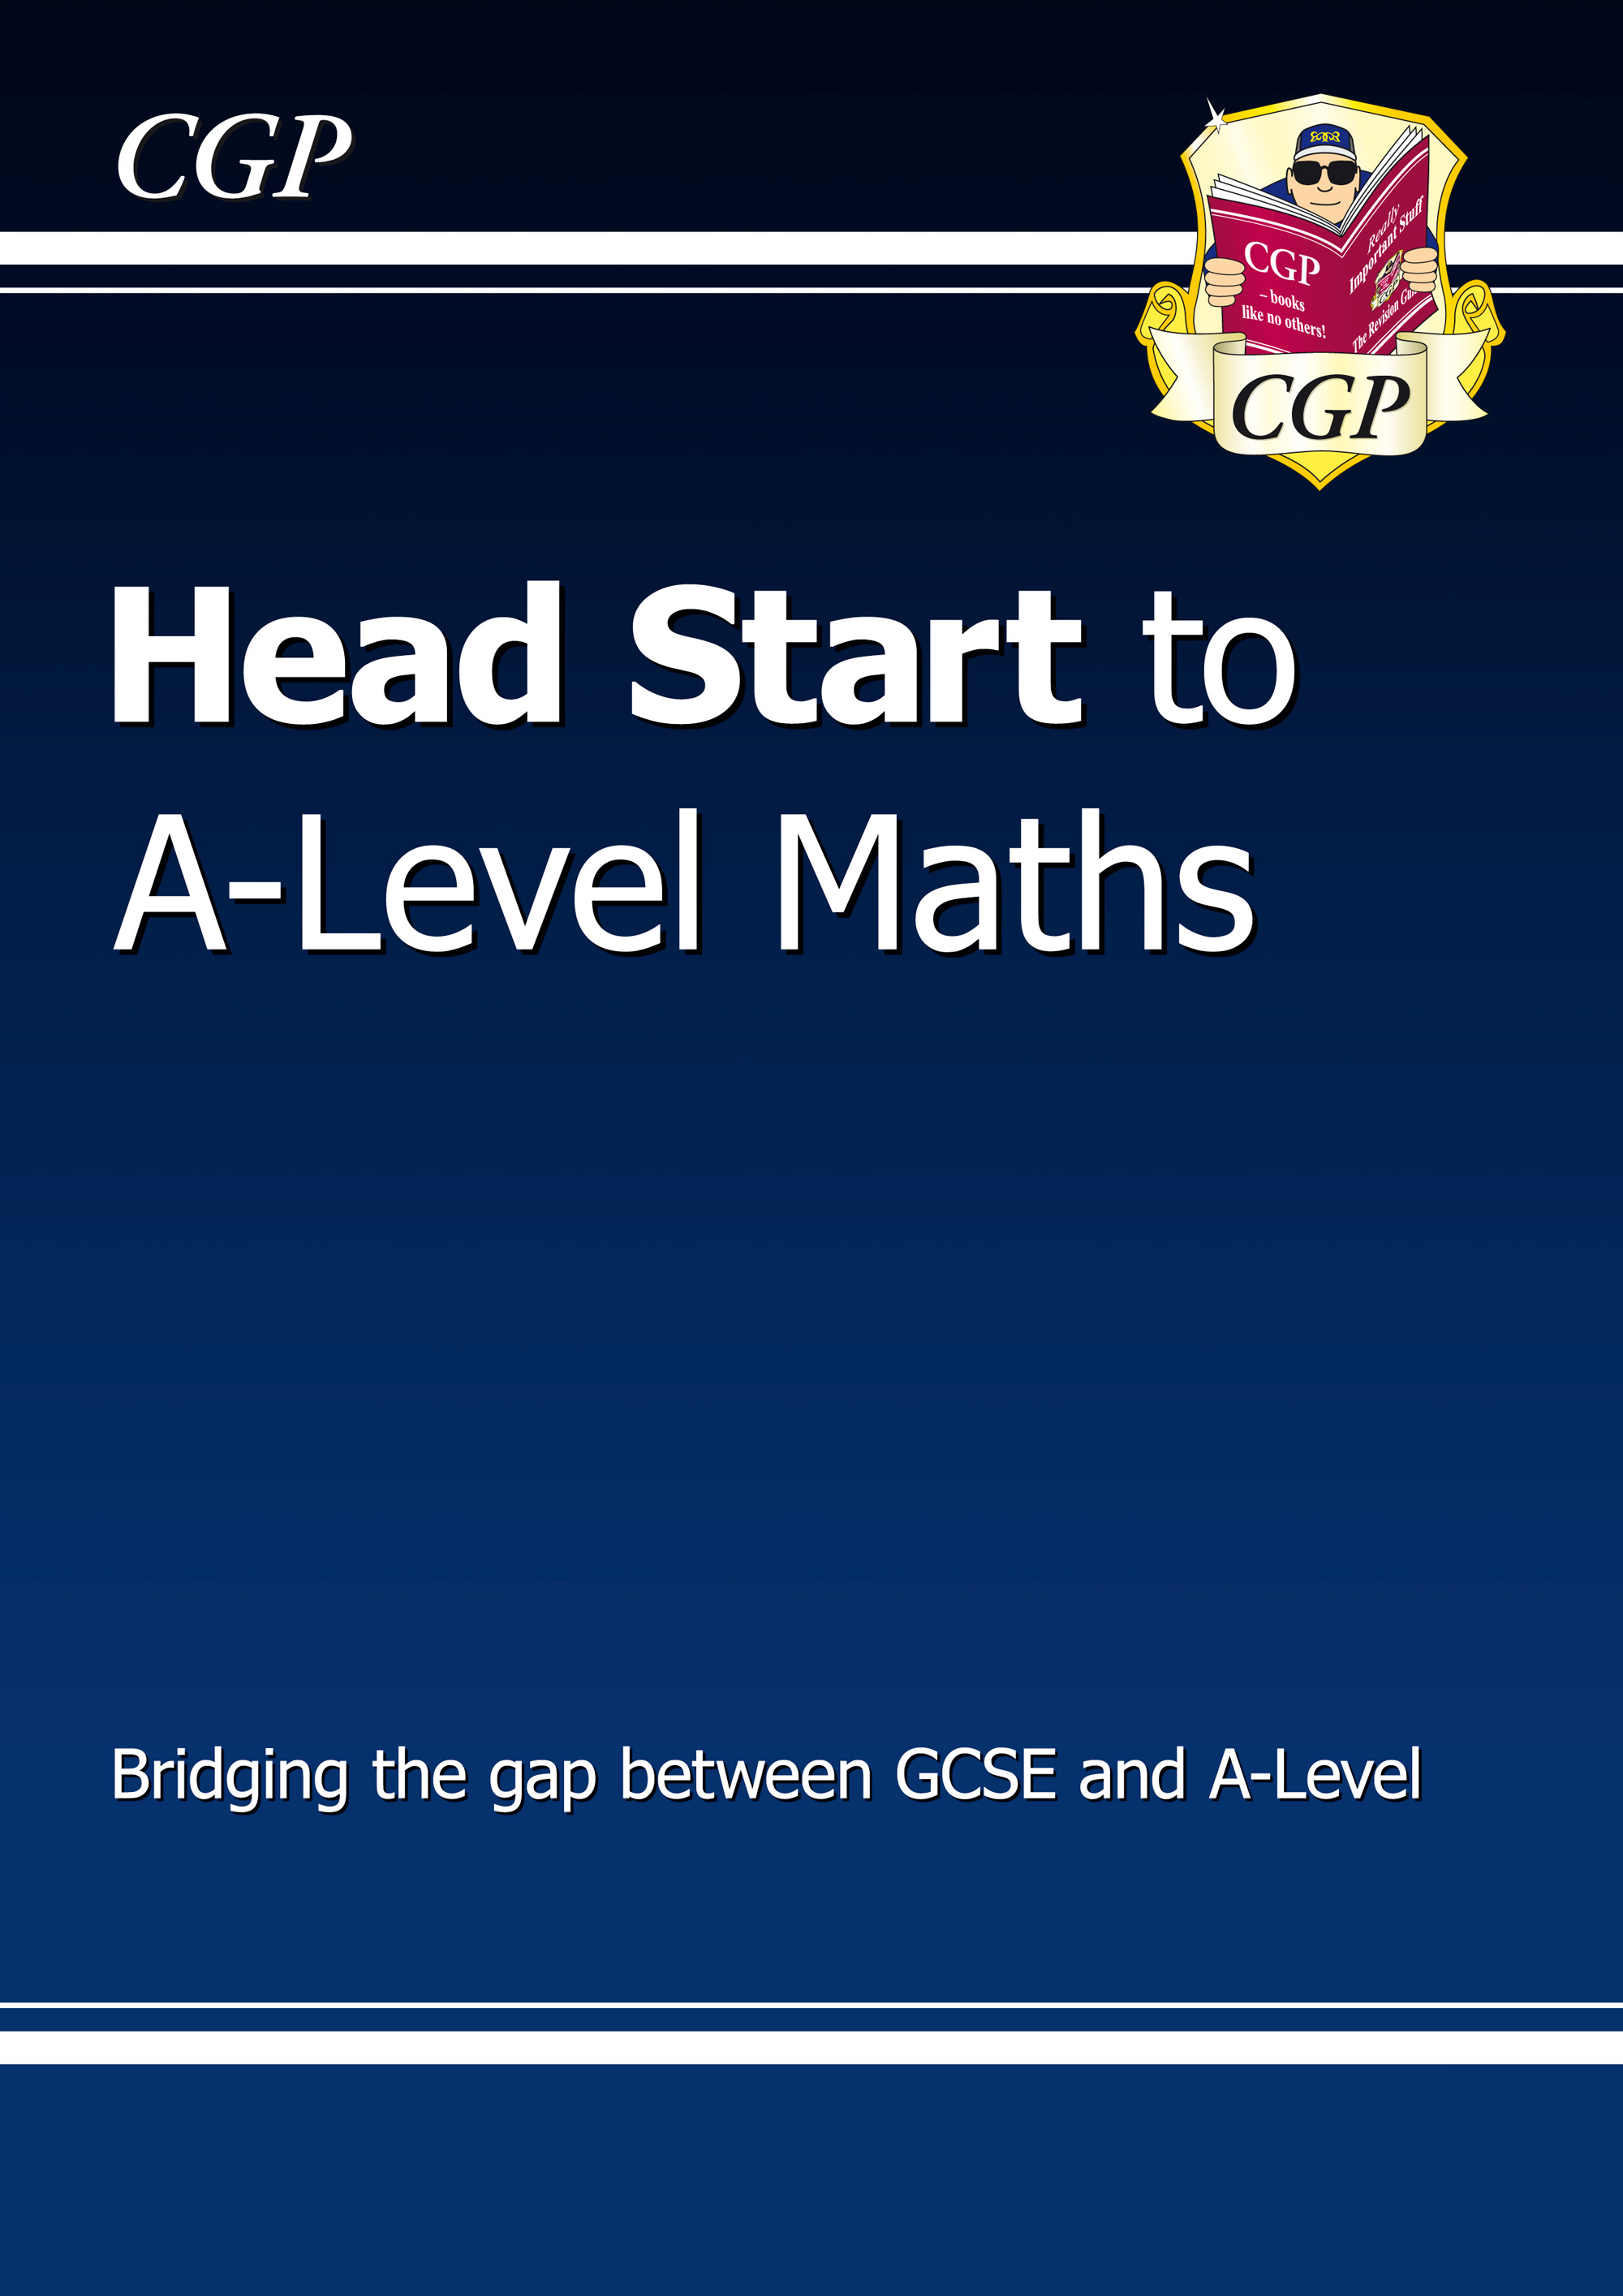 MBR71 - Head Start to A-Level Maths